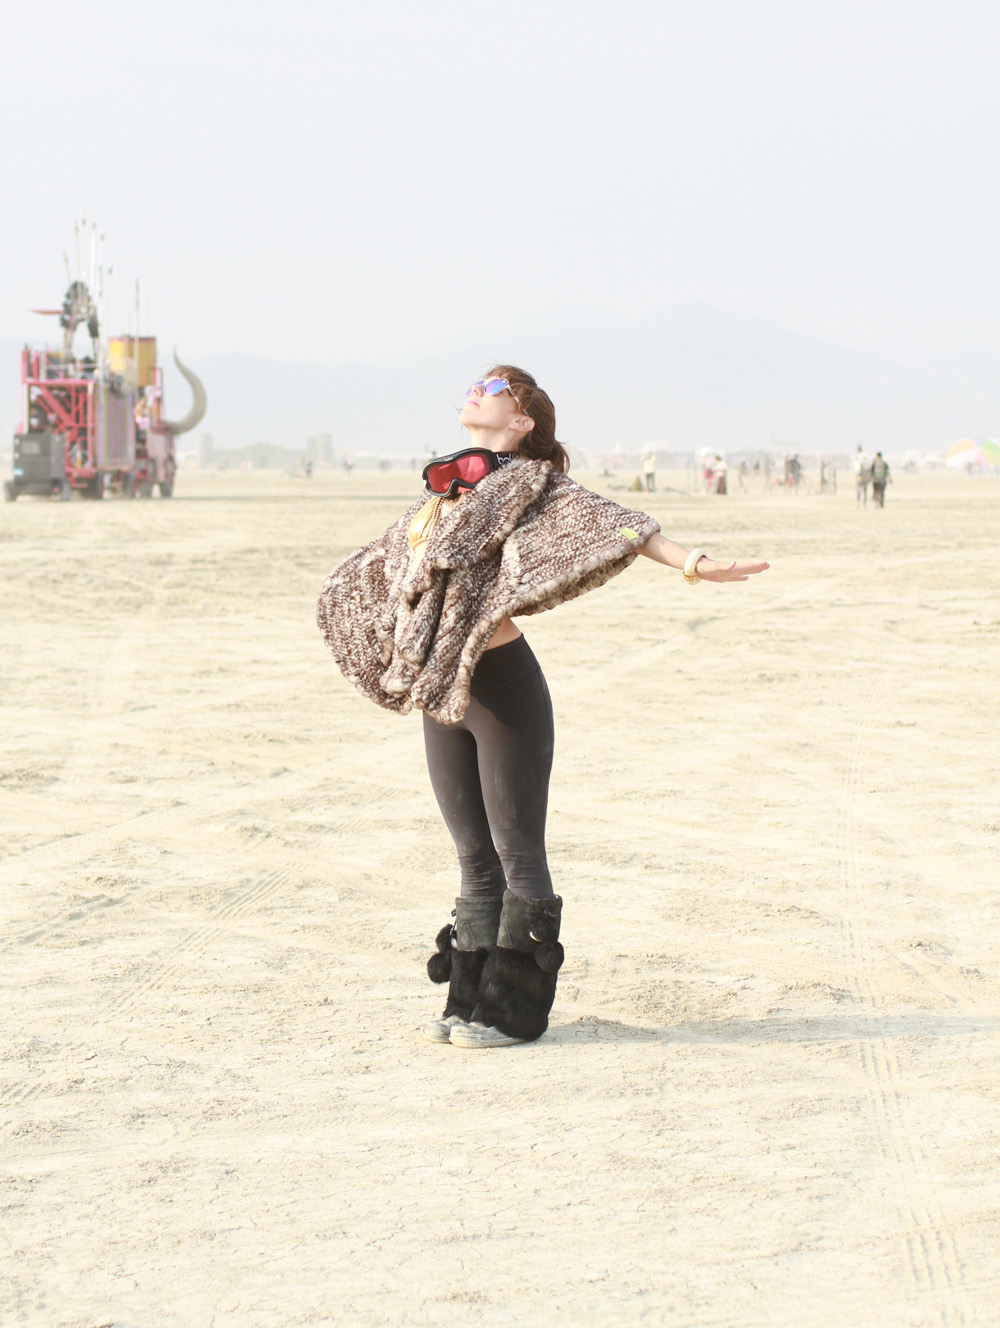 Alden Wicker at Burning Man